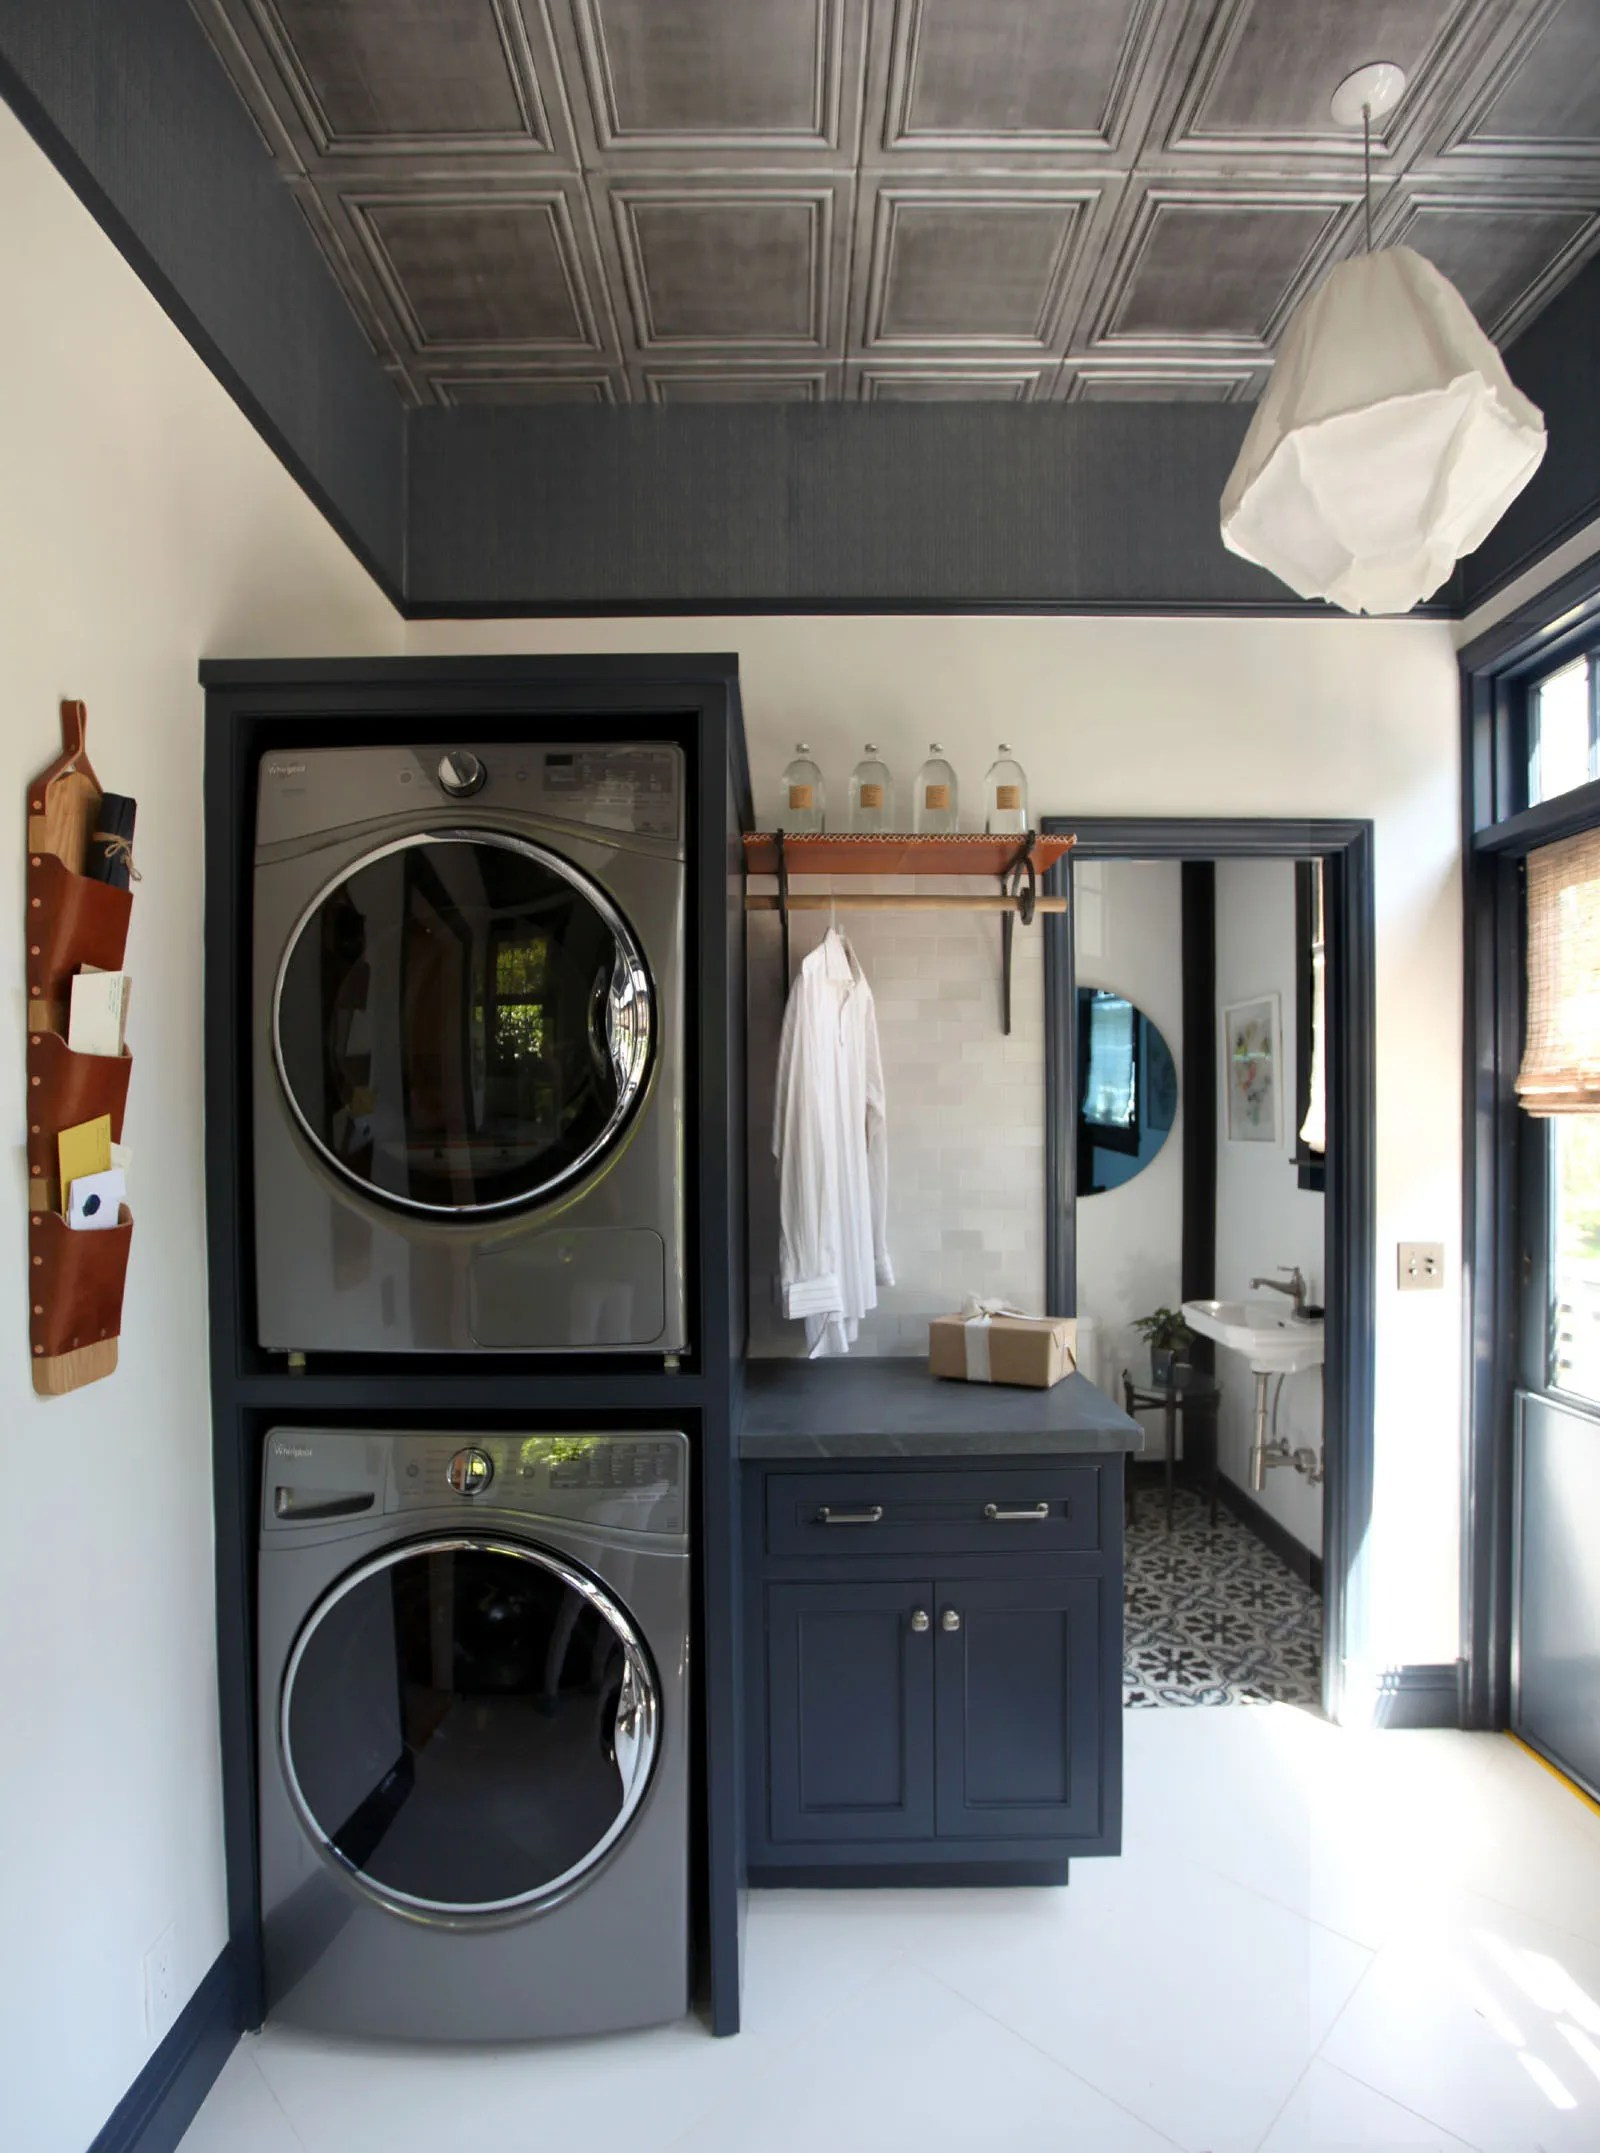 A Dreary Laundry Room Is Now a Place You Actually Want to Be  Architectural Digest